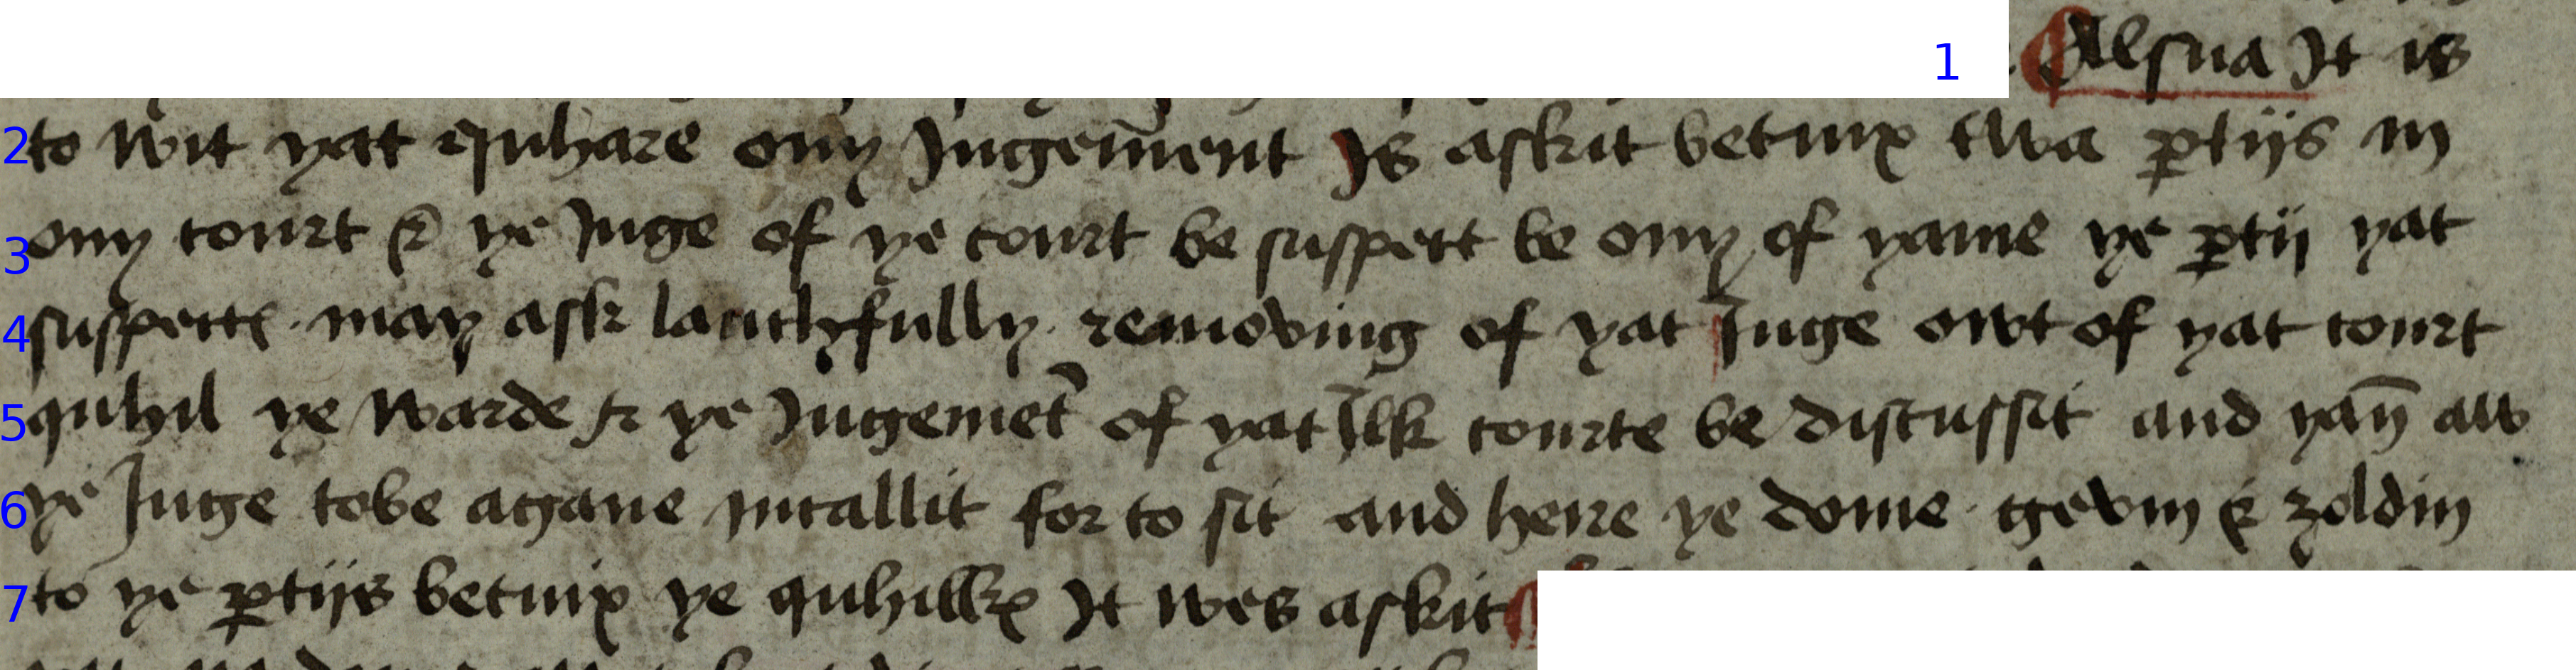 Week 4 15th century pre secretary hand read me for english transcribe these using the symbols and which you can find on the symbols menu in word or simply copy and paste them into your transcription biocorpaavc Gallery